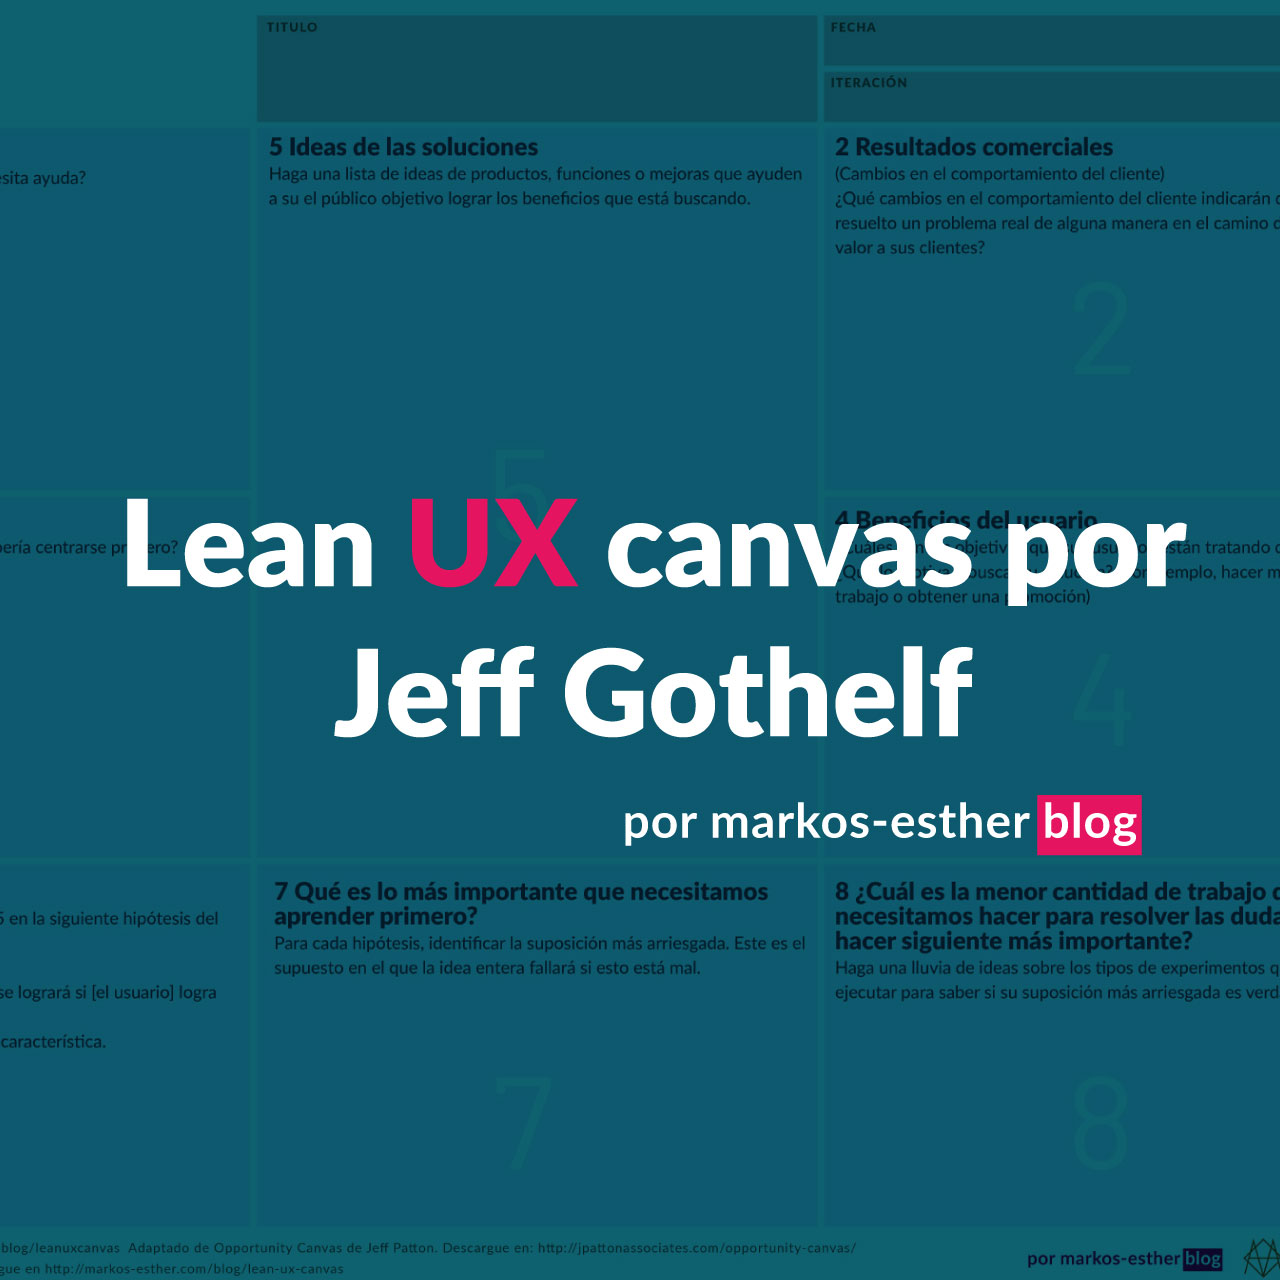 Lean UX canvas por Jeff Gothelf